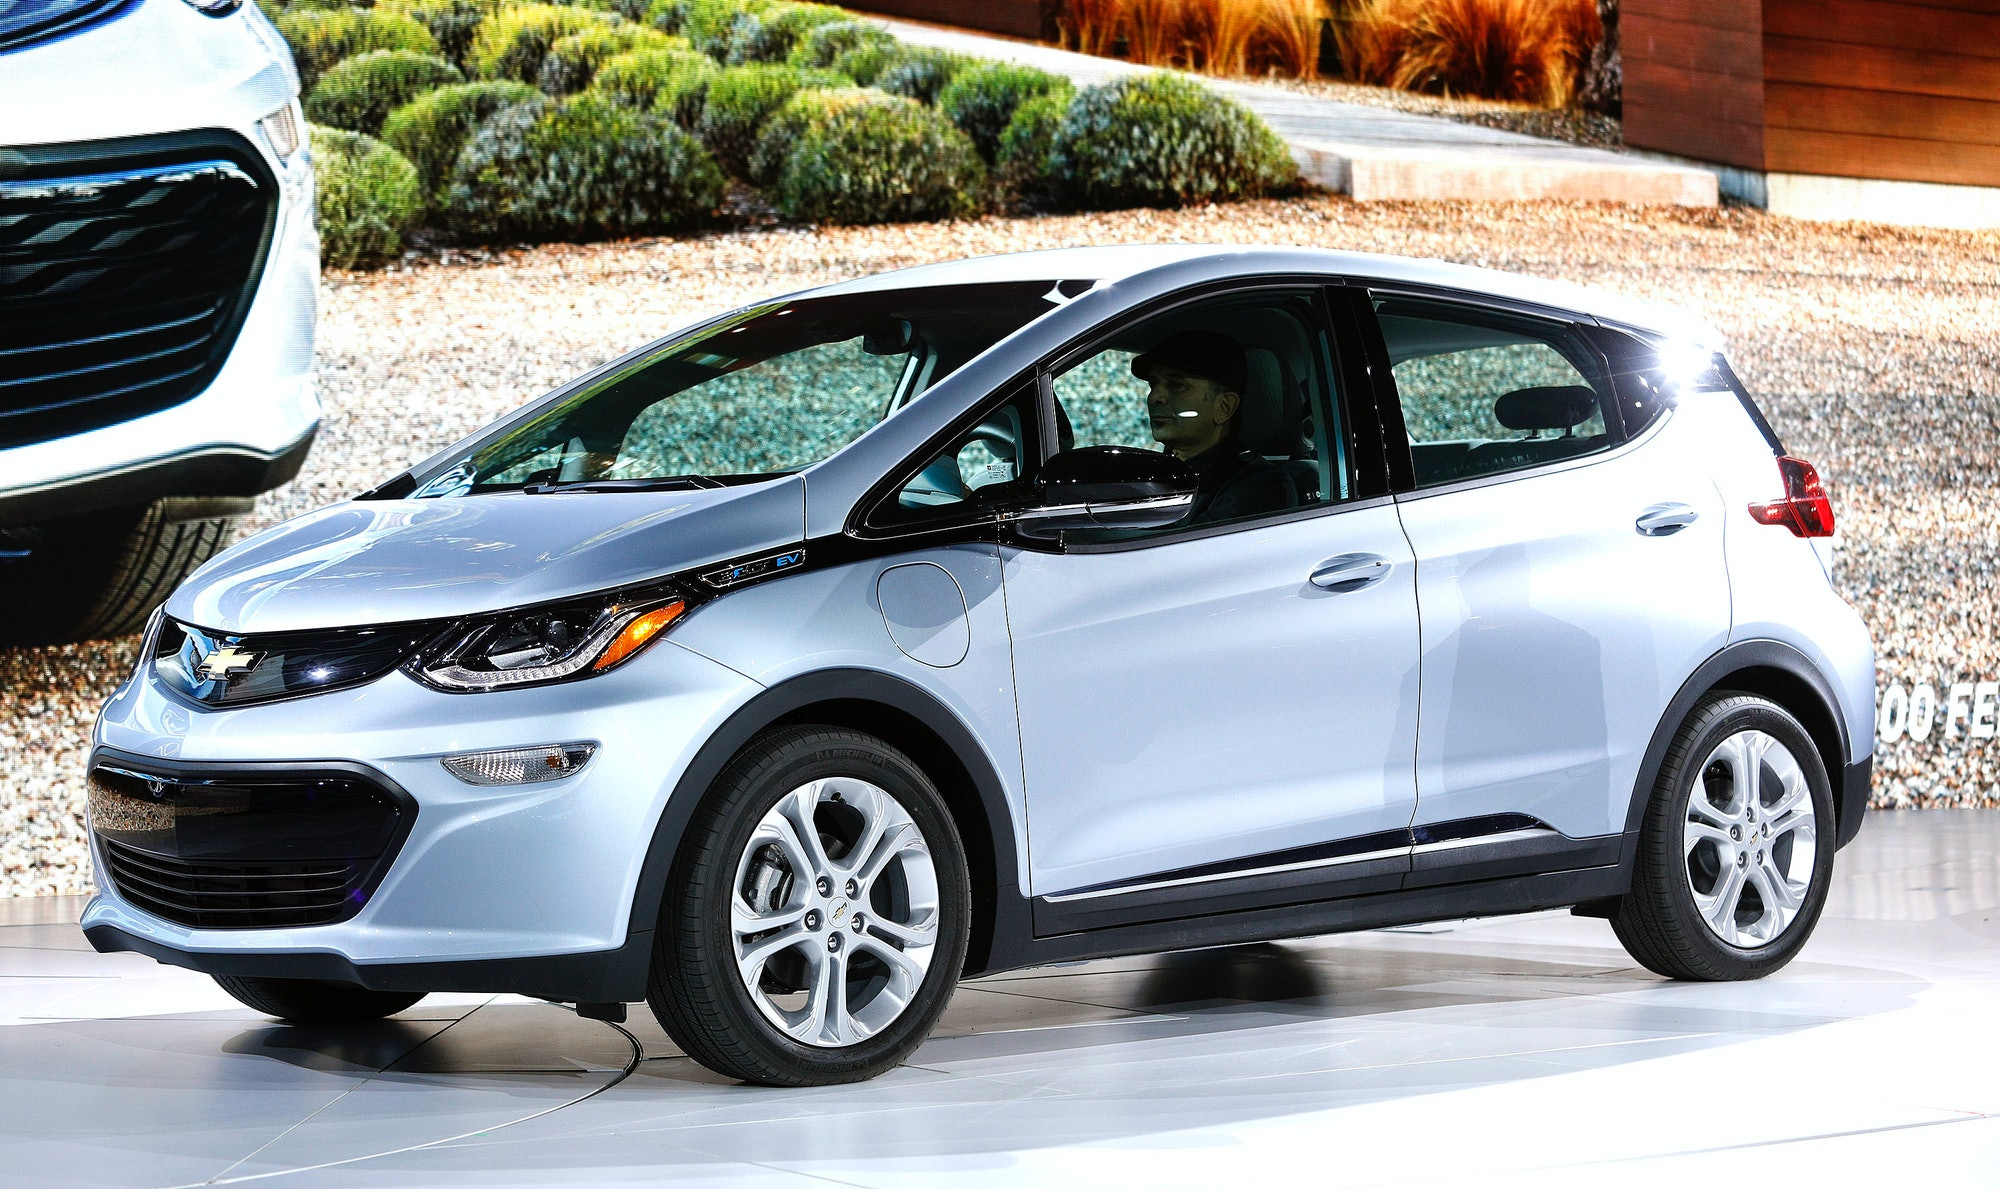 The all-electric Chevrolet Bolt EV is shown on stage after it won the Car of the Year Award at the 2017 North American International Auto Show on January 9,2017in Detroit, Michigan.